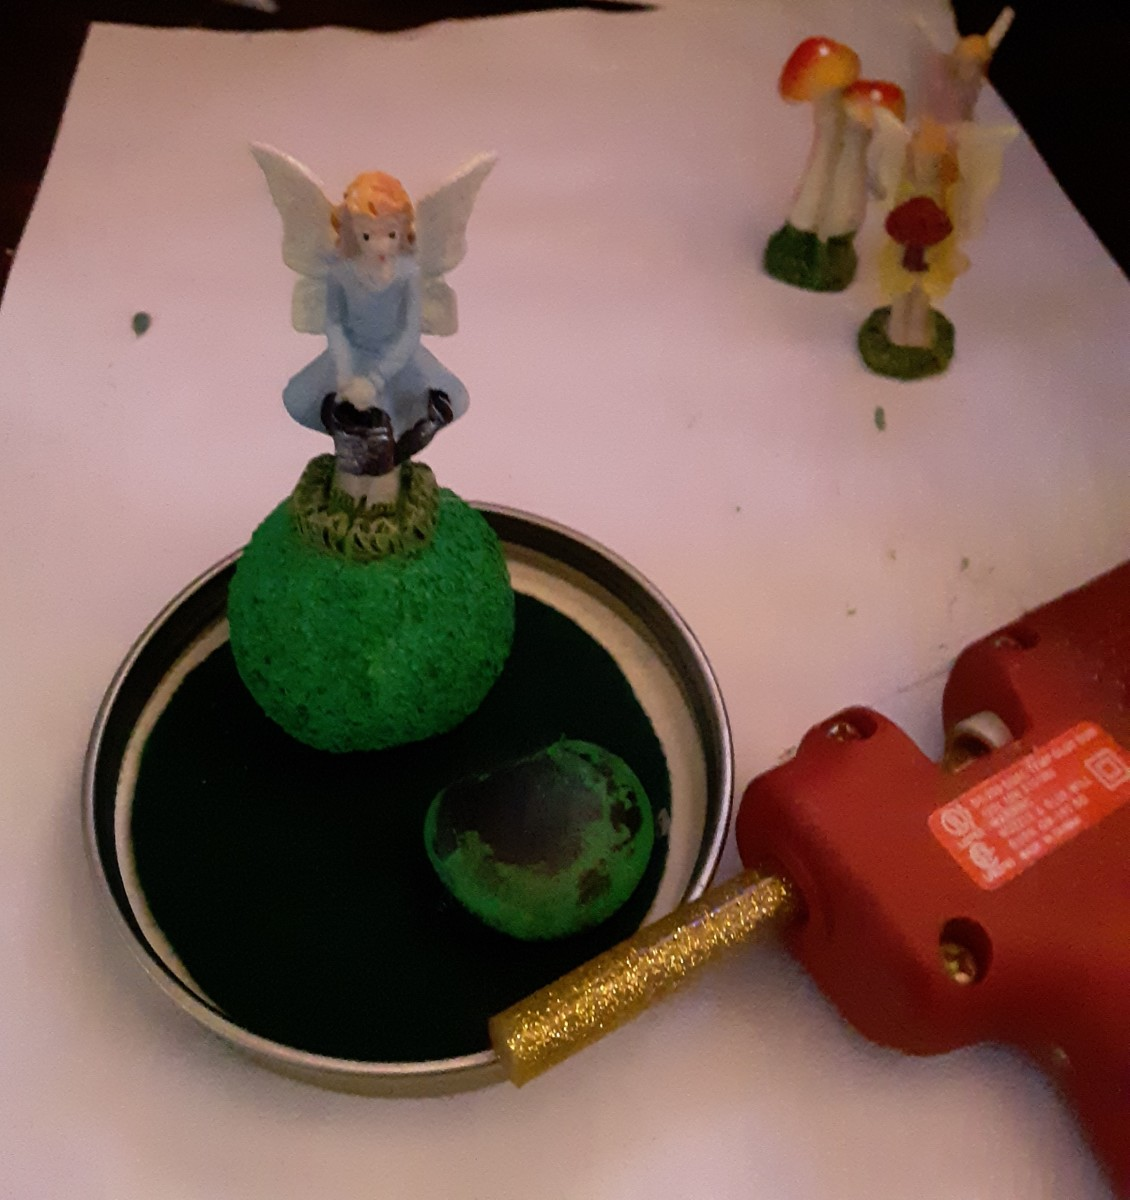 Glue fairy to the top of foam ball.